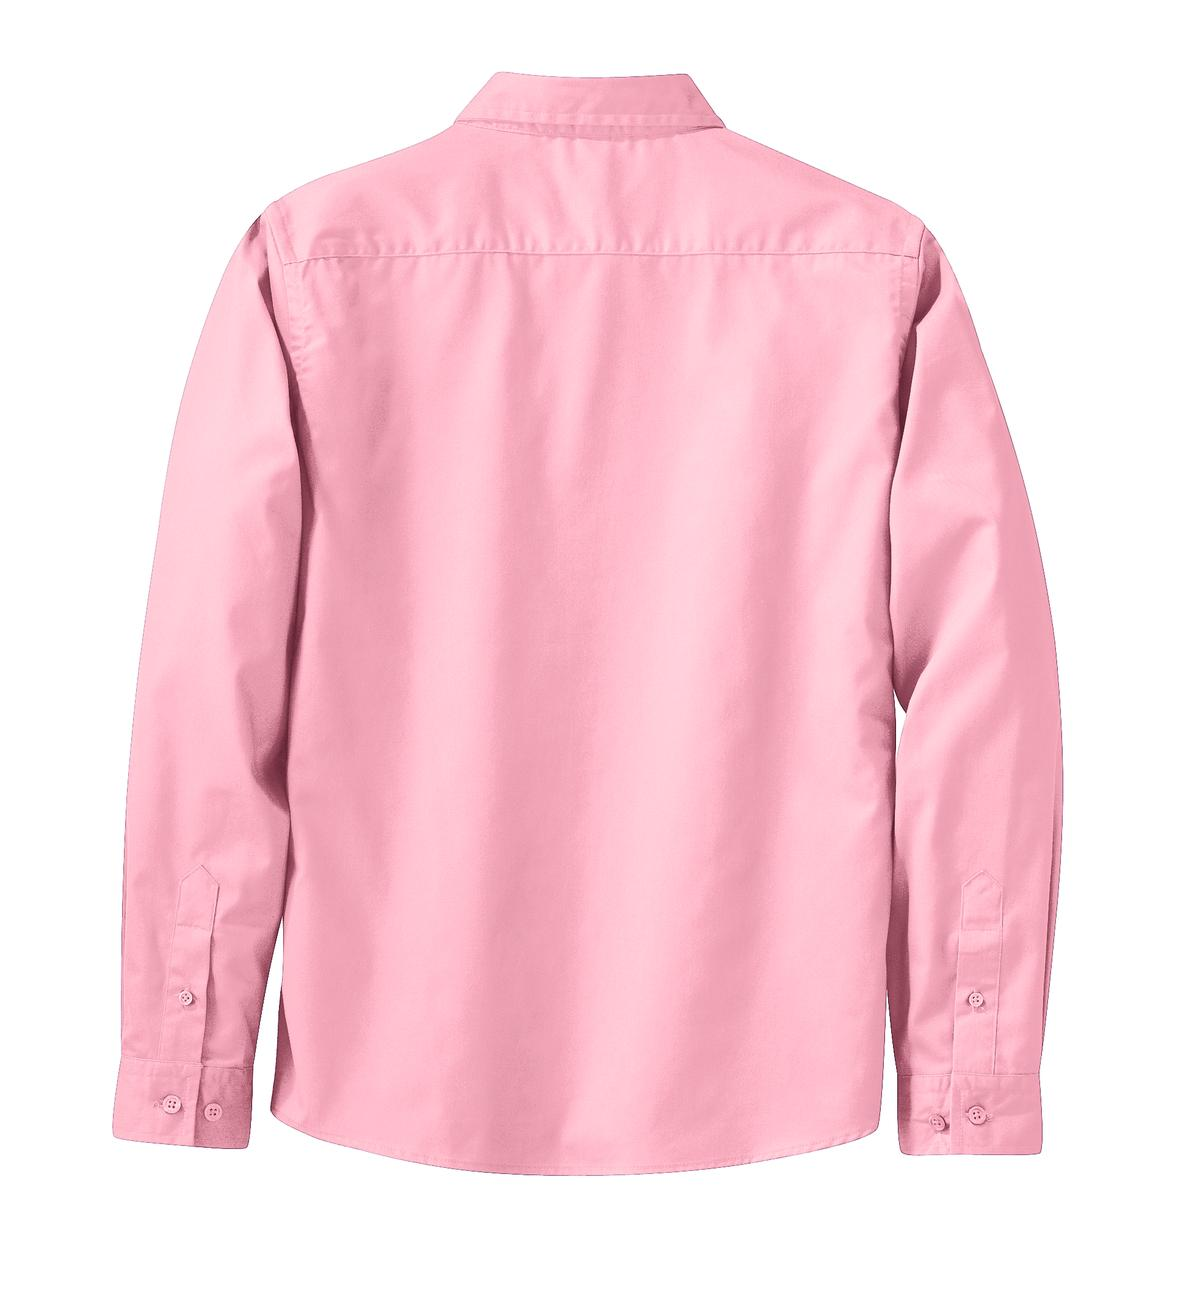 Mafoose Women's Long Sleeve Easy Care Shirt Light Pink-Back